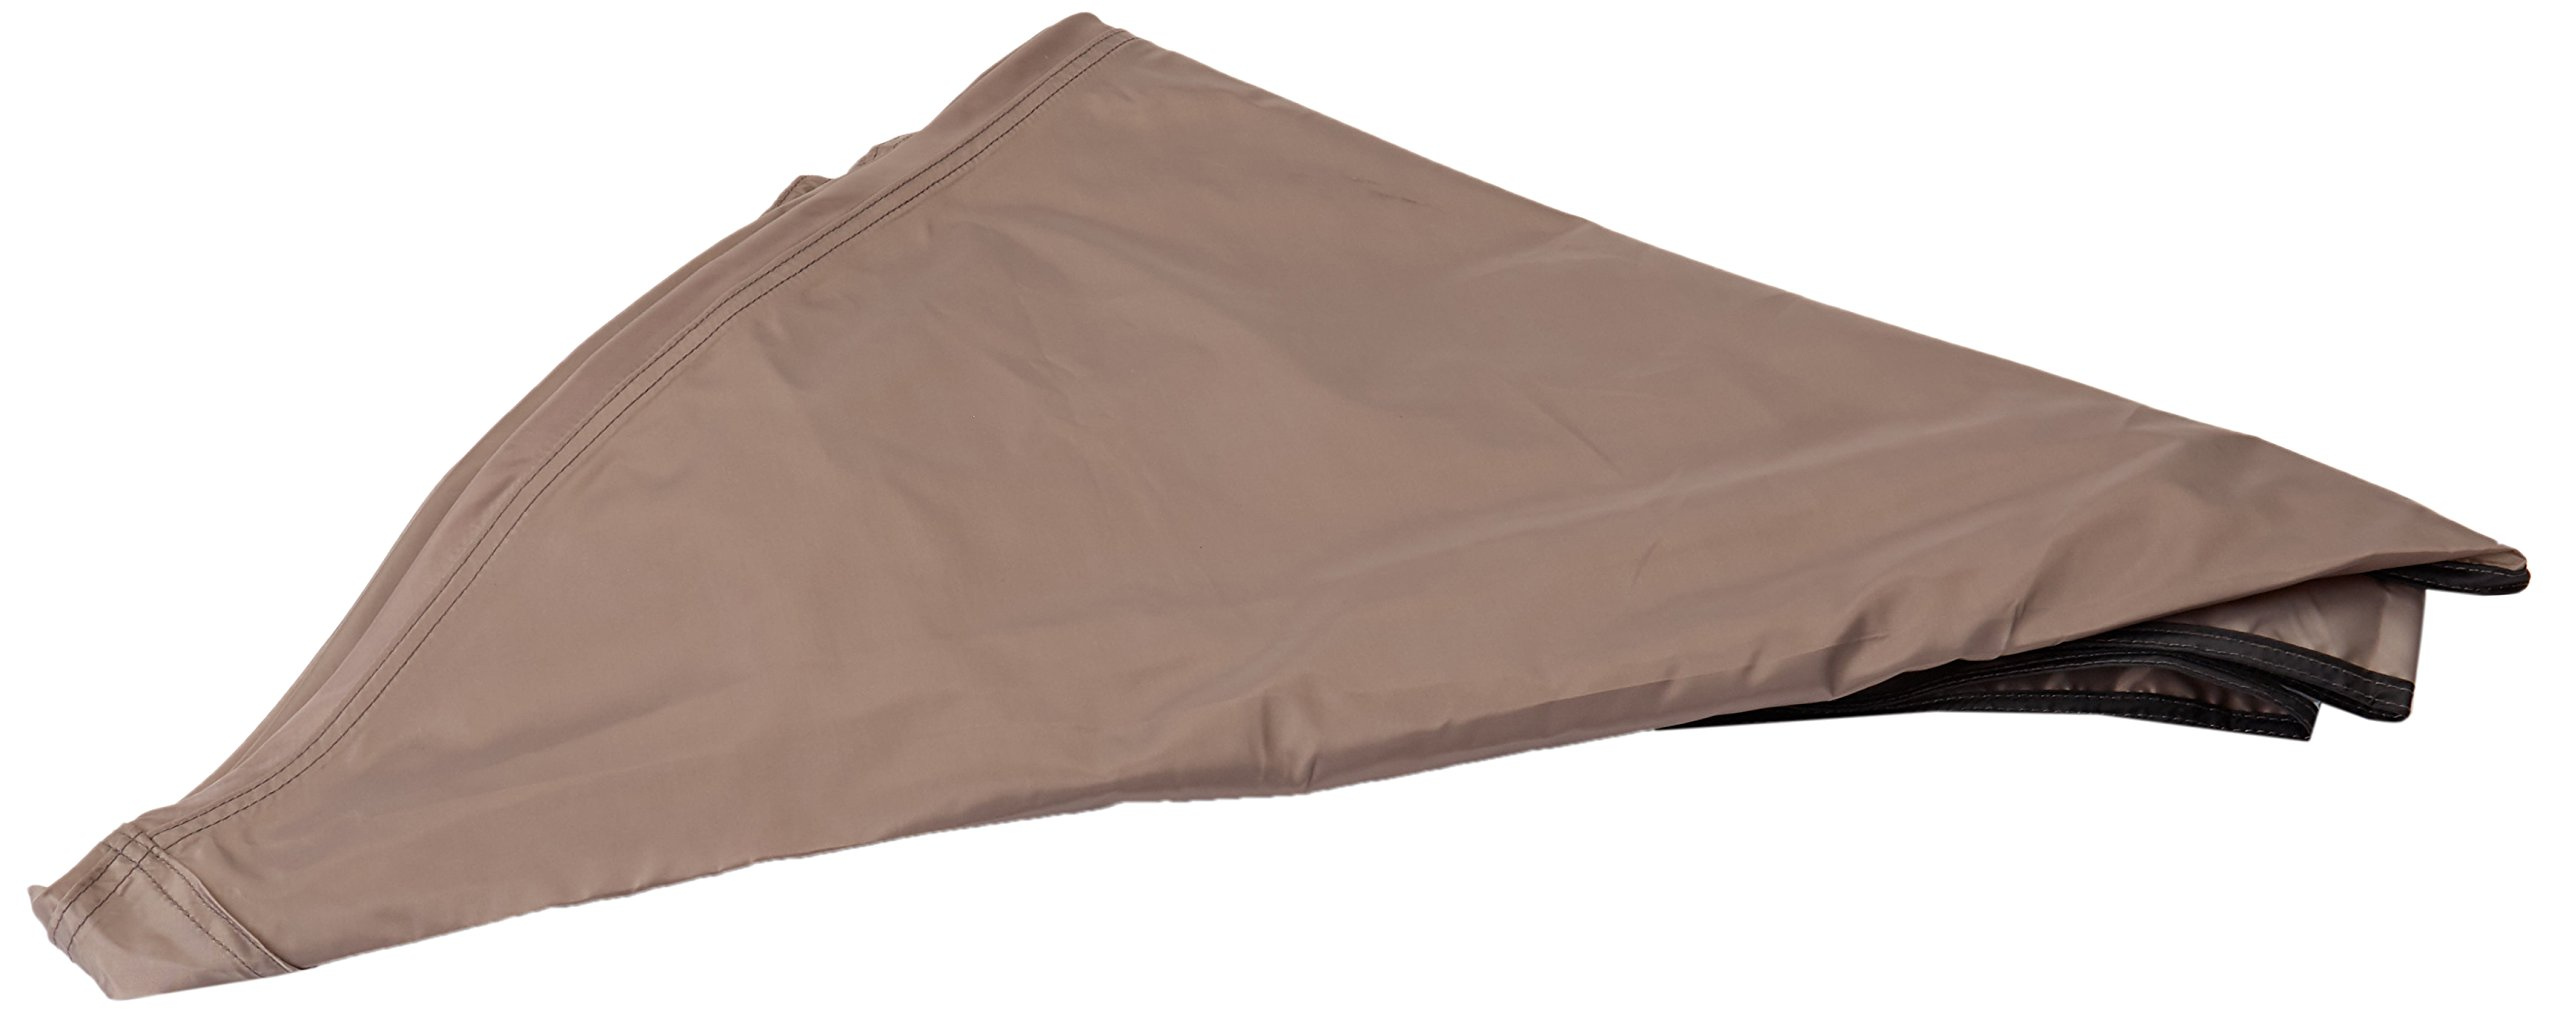 Coleman 4-Person Instant Tent Rainfly Accessory